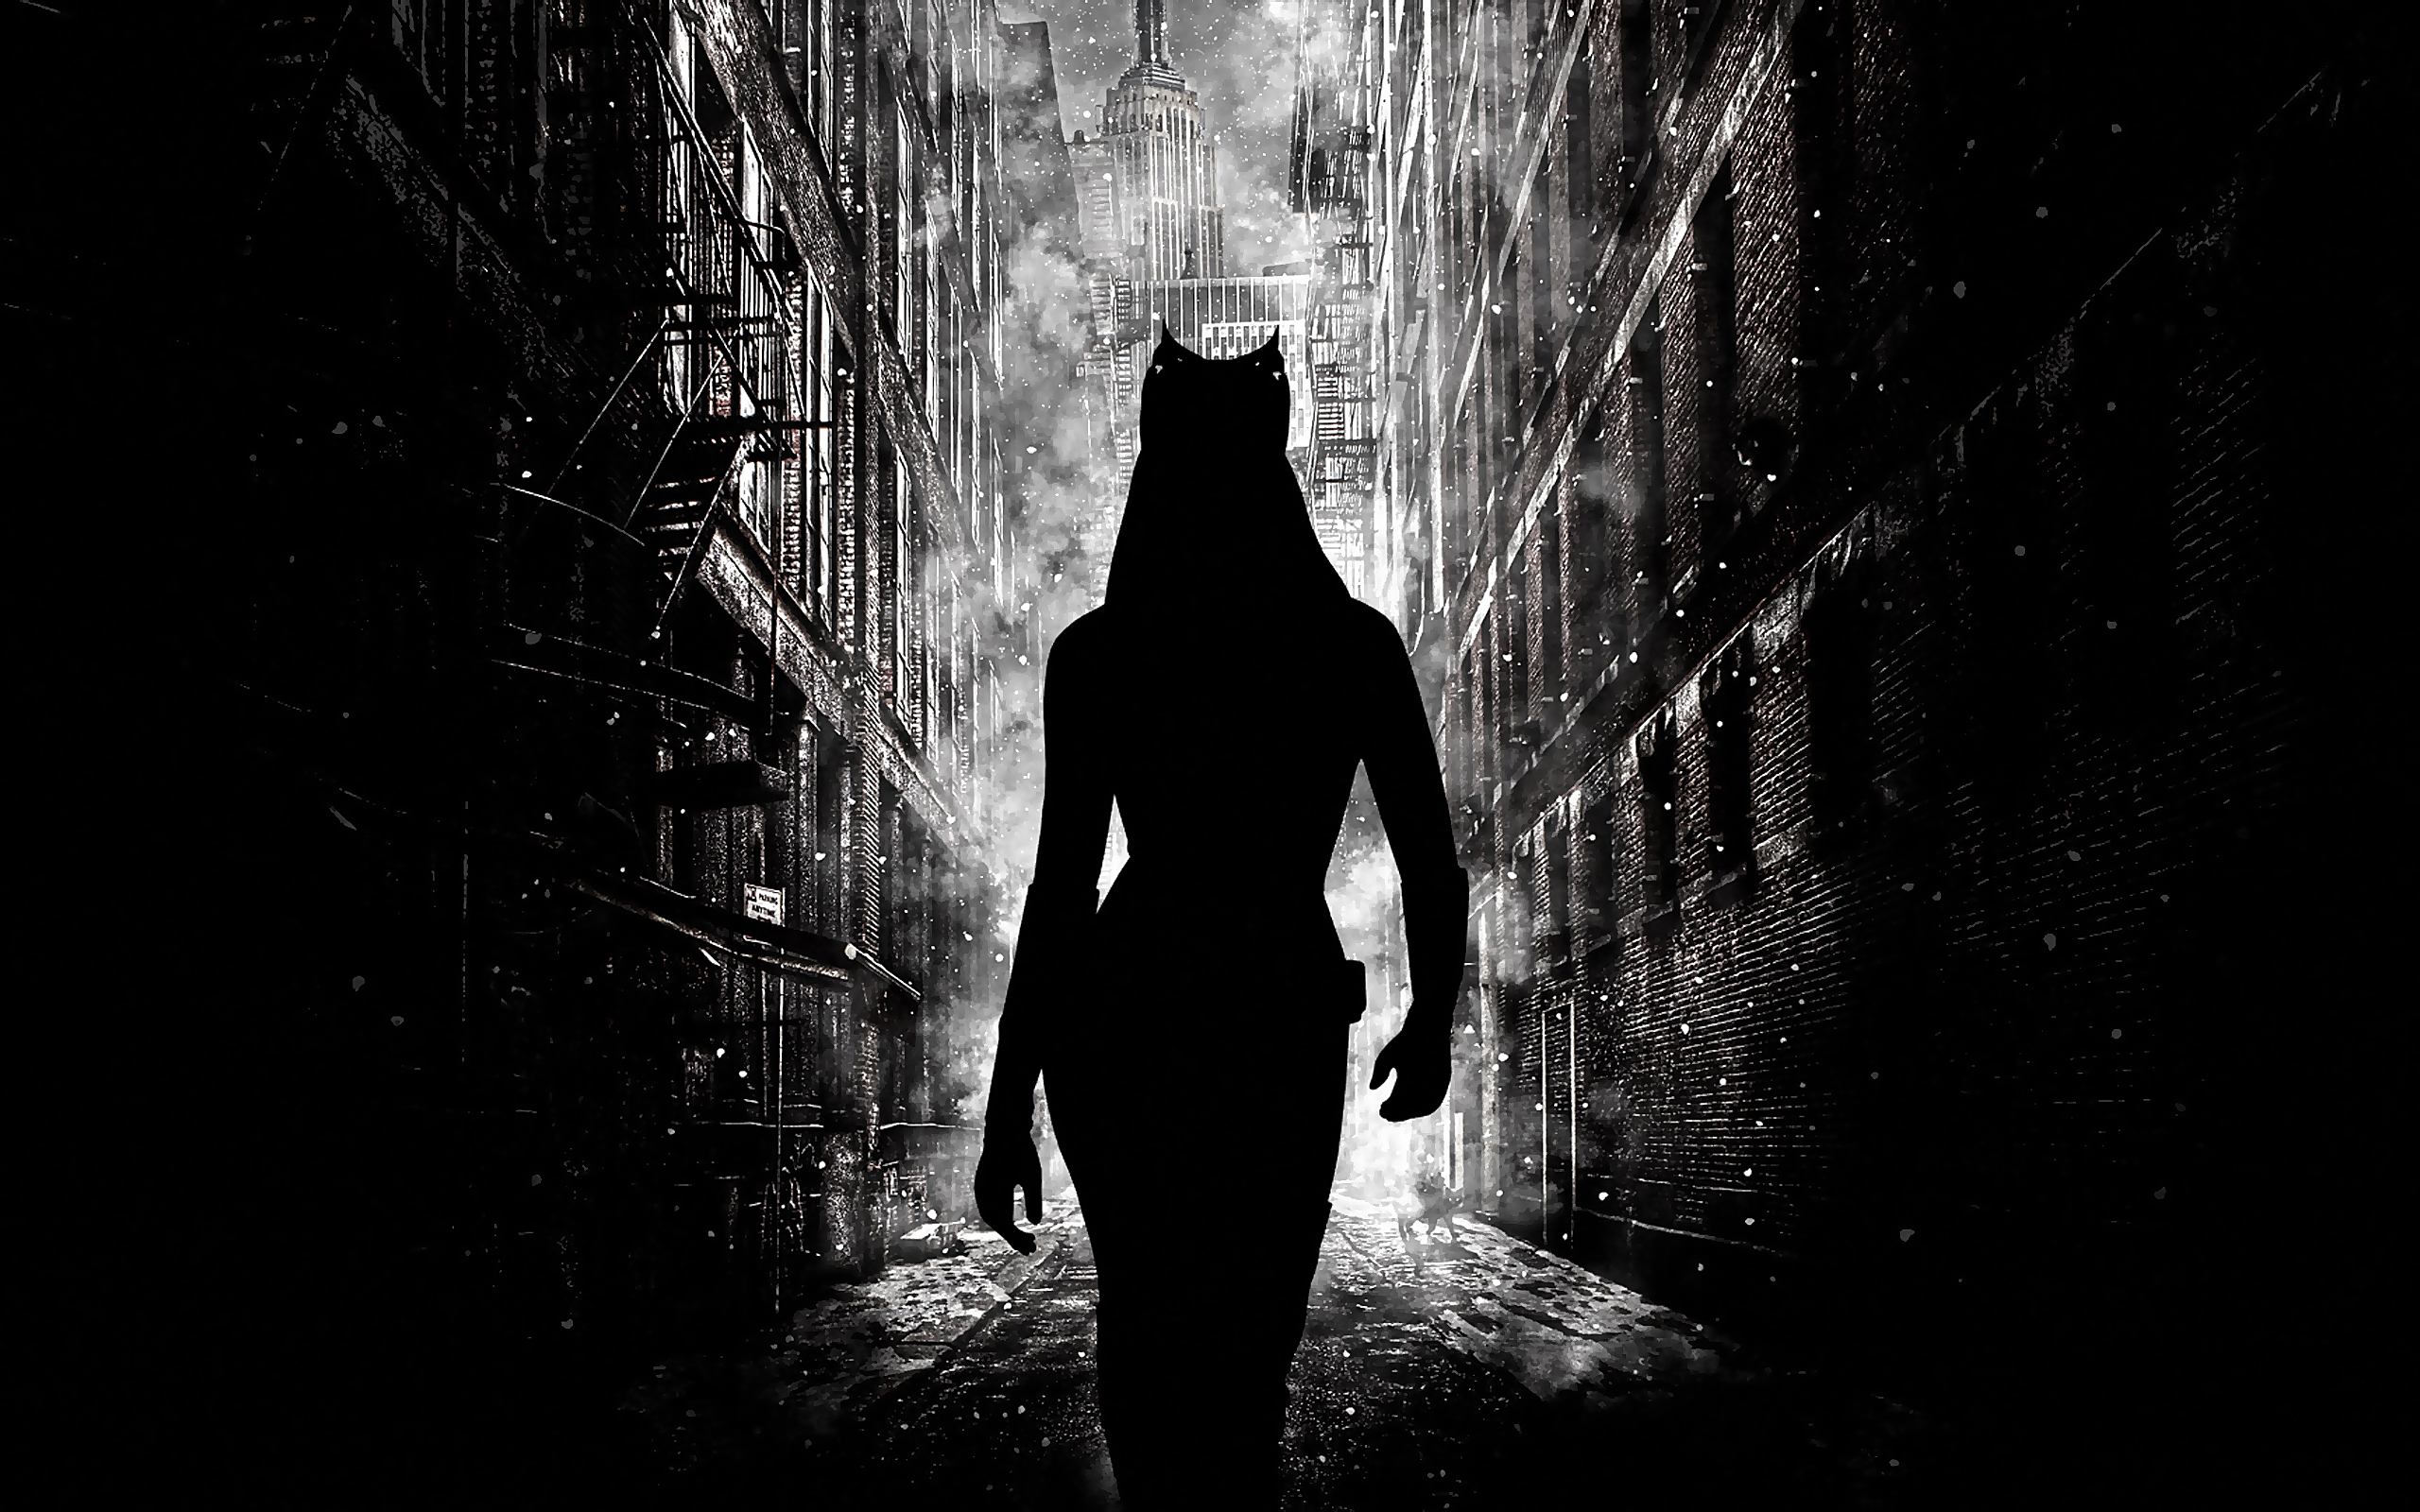 BW The Dark Knight Rises Catwoman Wallpaper Black and 2560x1600